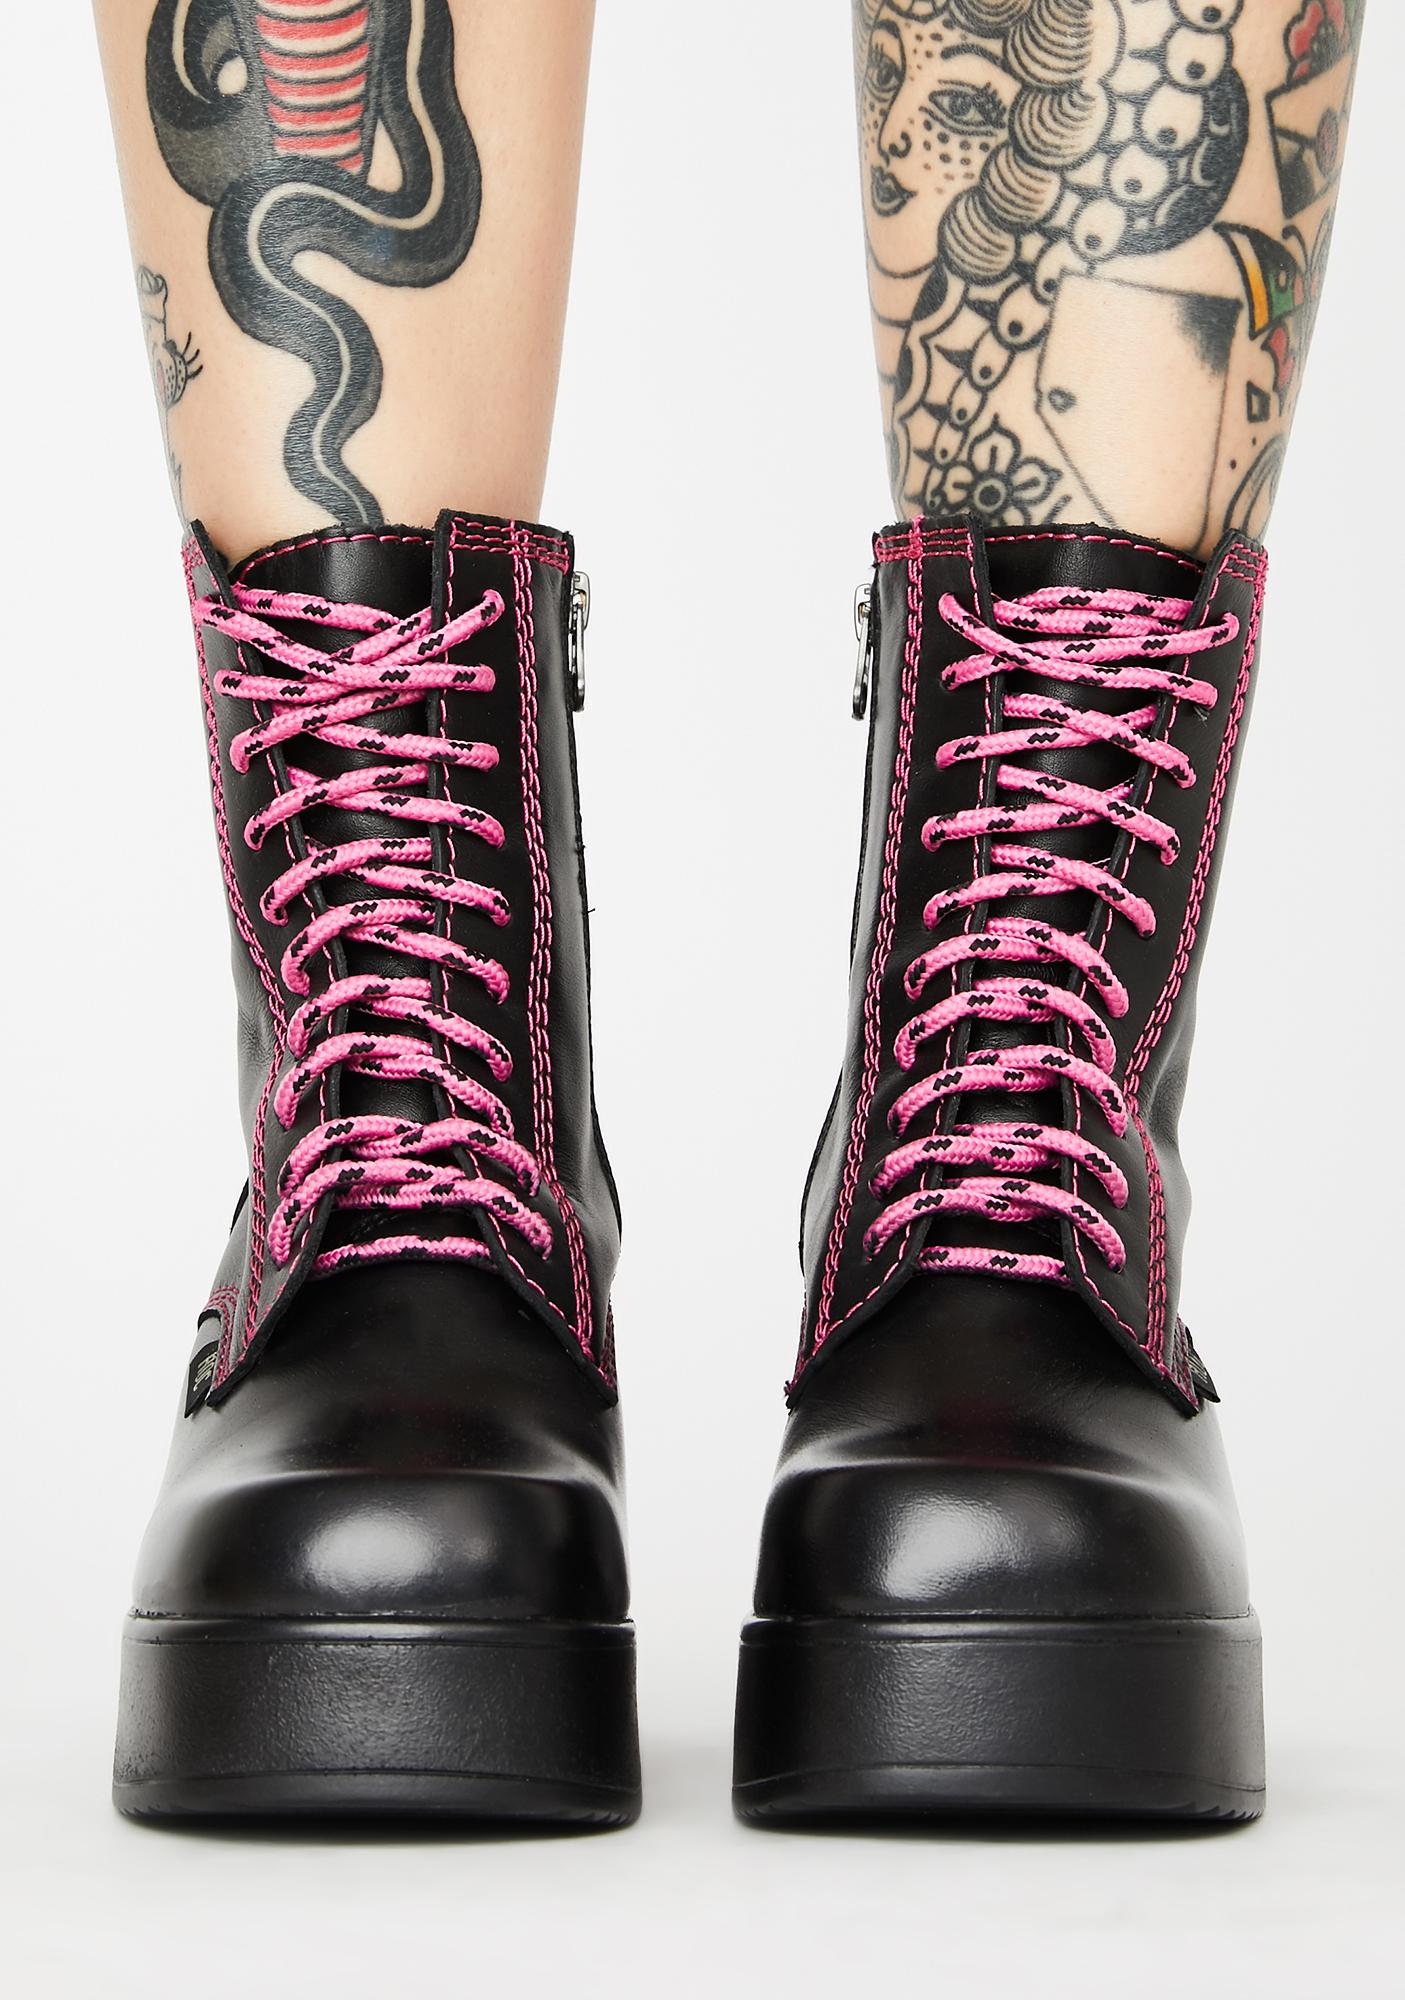 ROC Boots Australia  Pyramid Ankle Boots